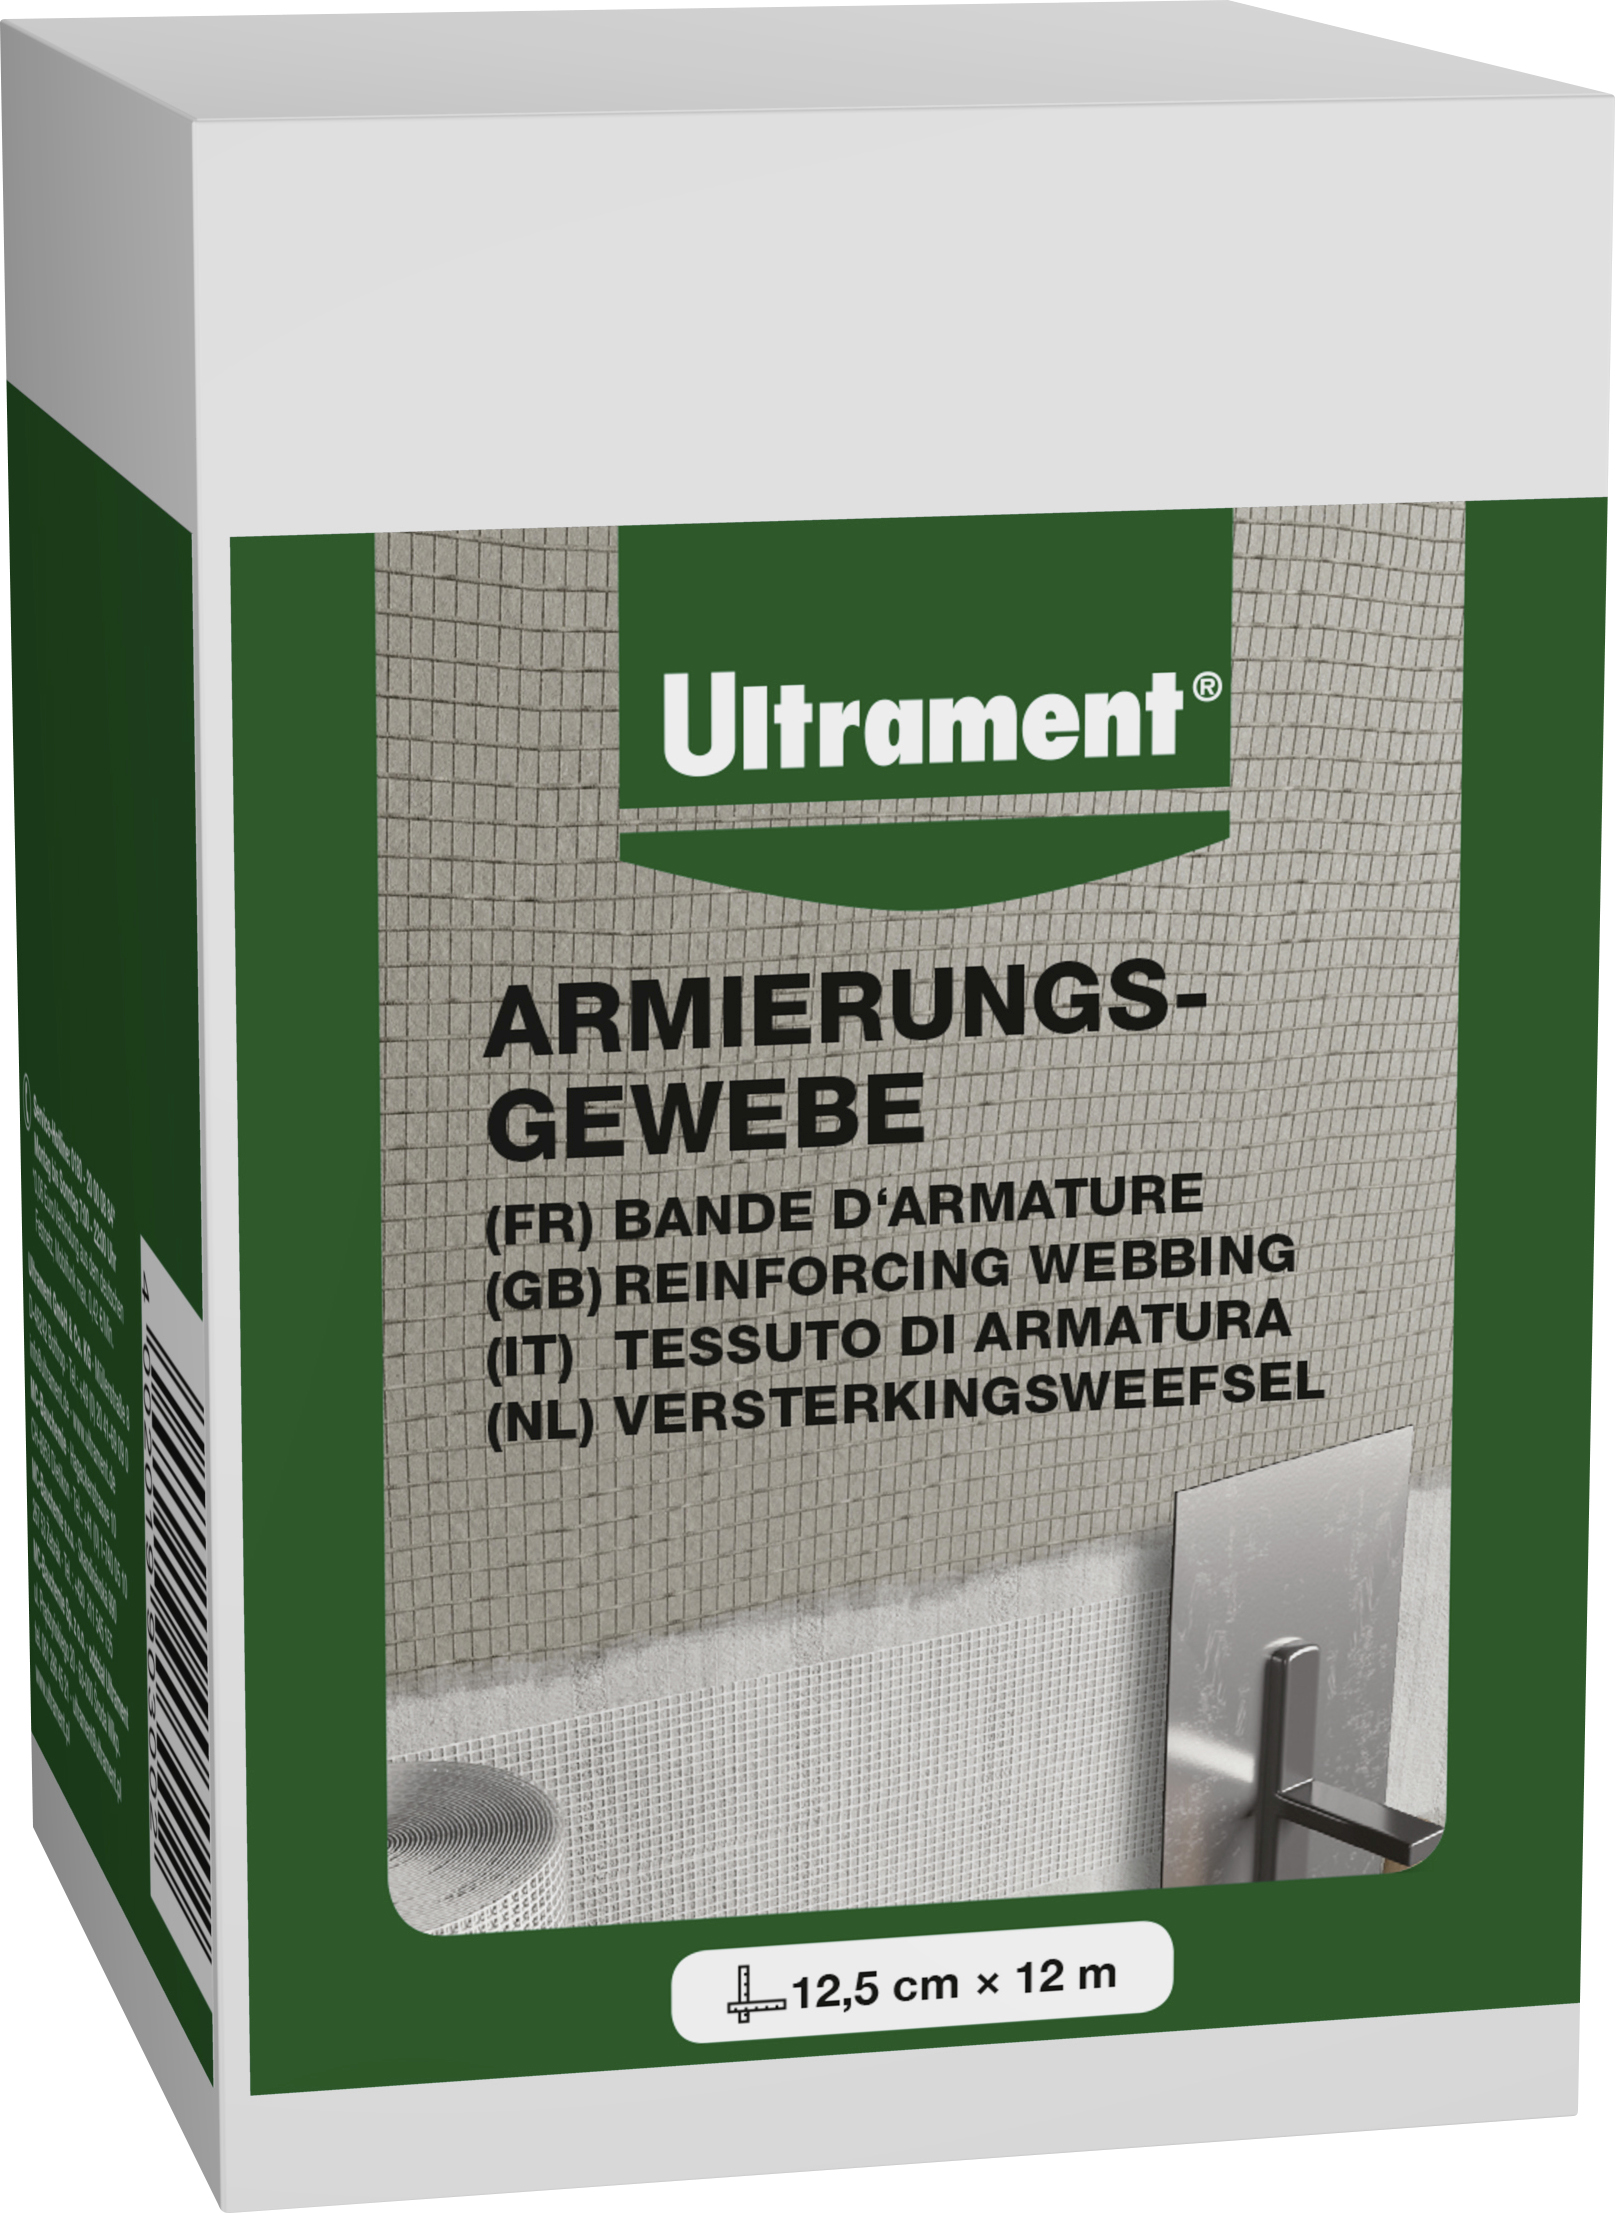 ultrament armierungsgewebe armierungsgewebe globus baumarkt online shop. Black Bedroom Furniture Sets. Home Design Ideas